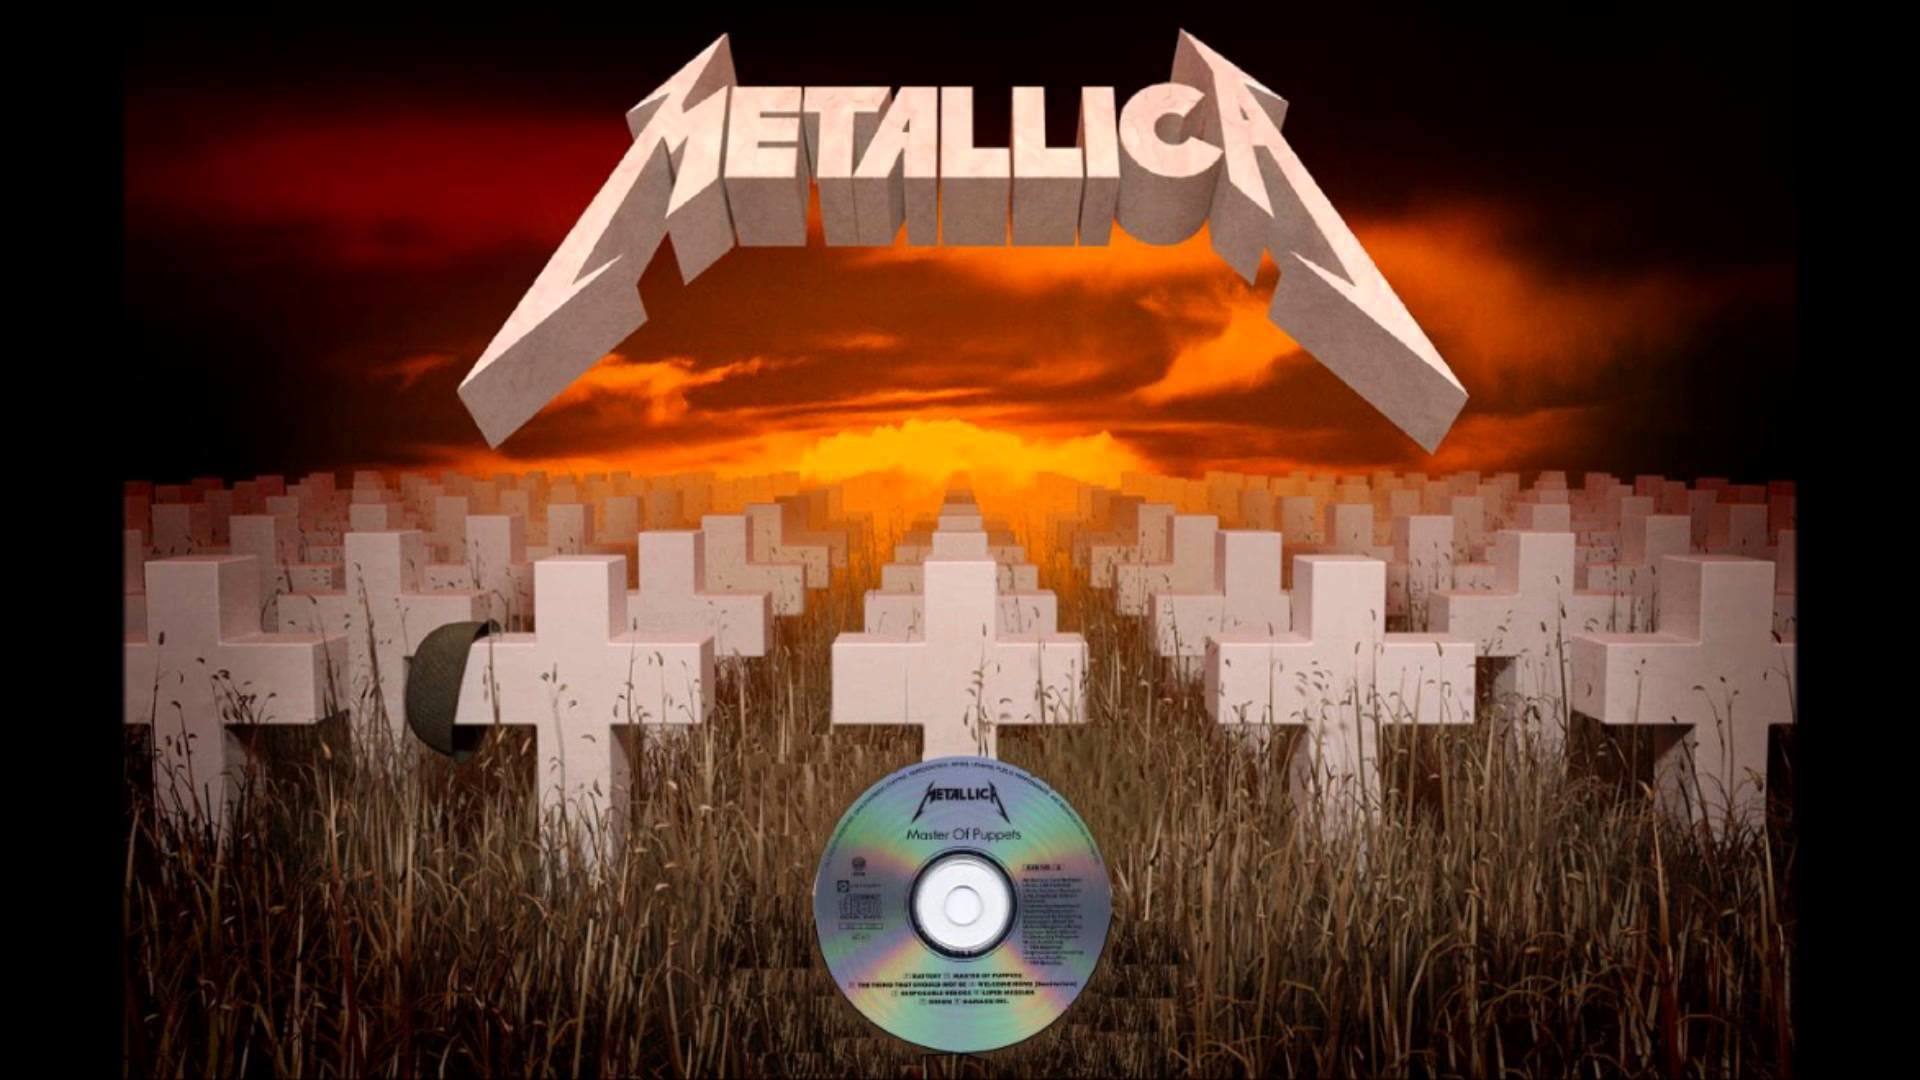 Metallica Master Of Puppets Wallpaper 60 Images